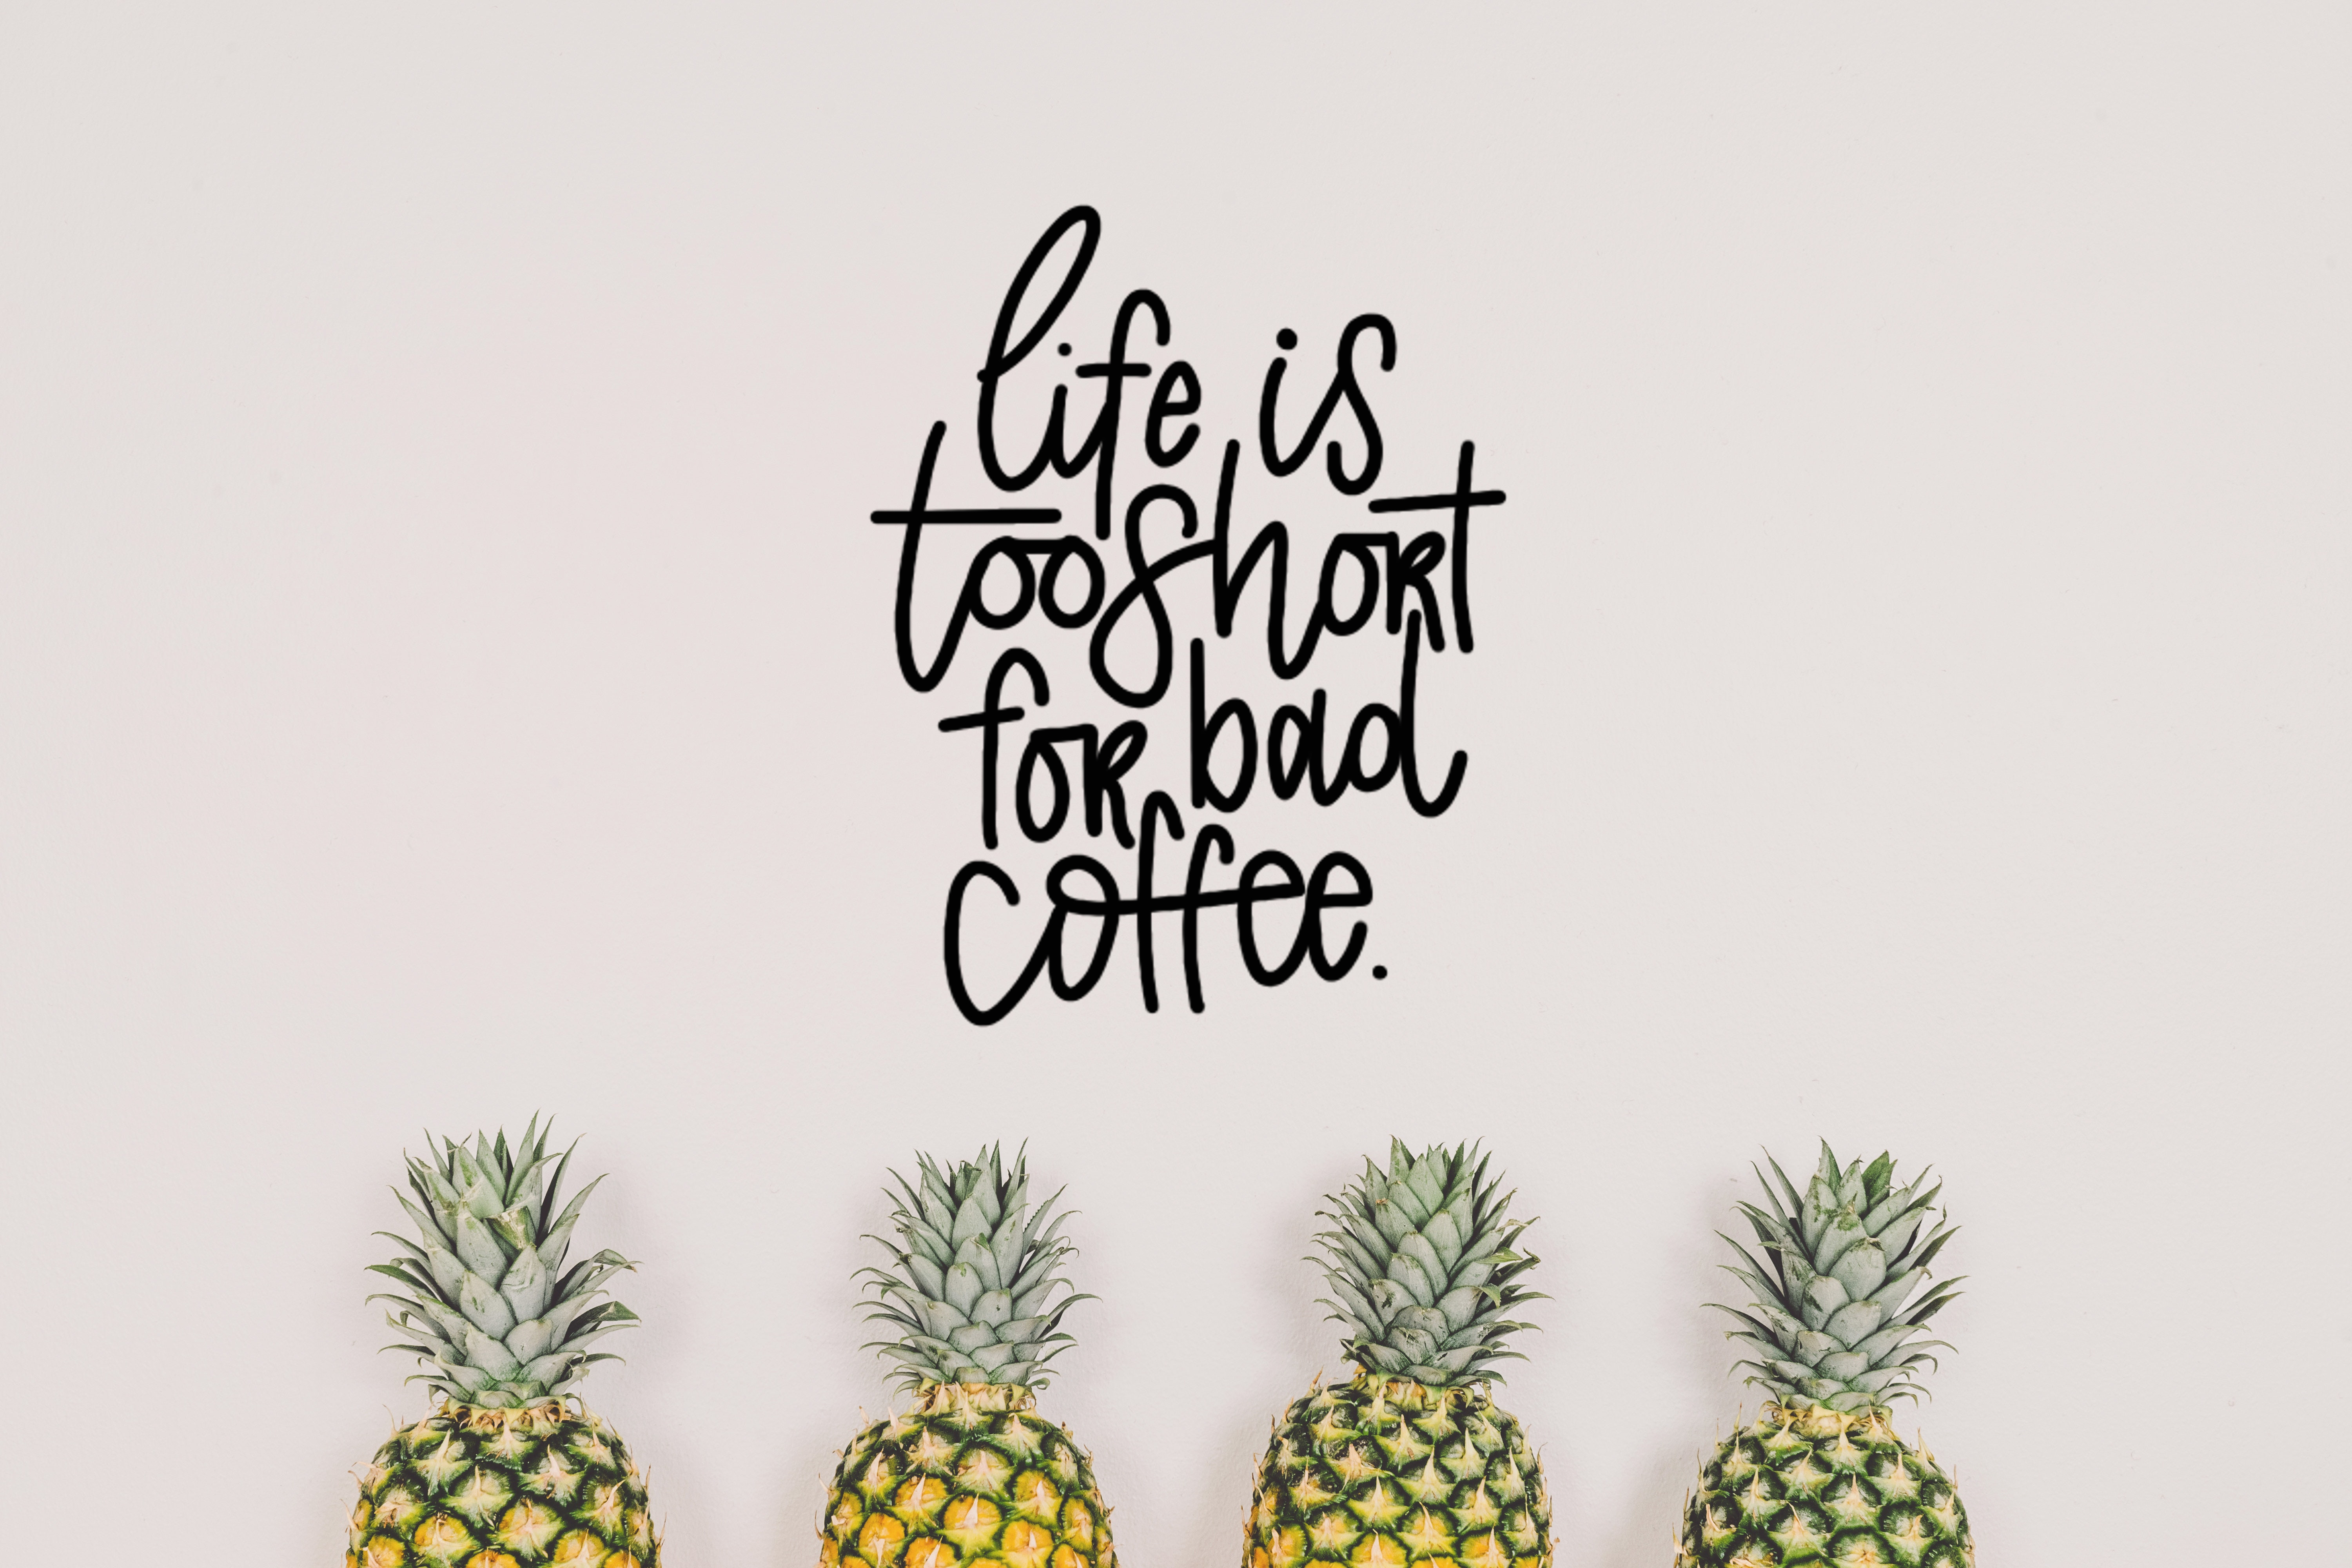 Download Free Life Is Too Short For Bad Coffee Svg Graphic By for Cricut Explore, Silhouette and other cutting machines.